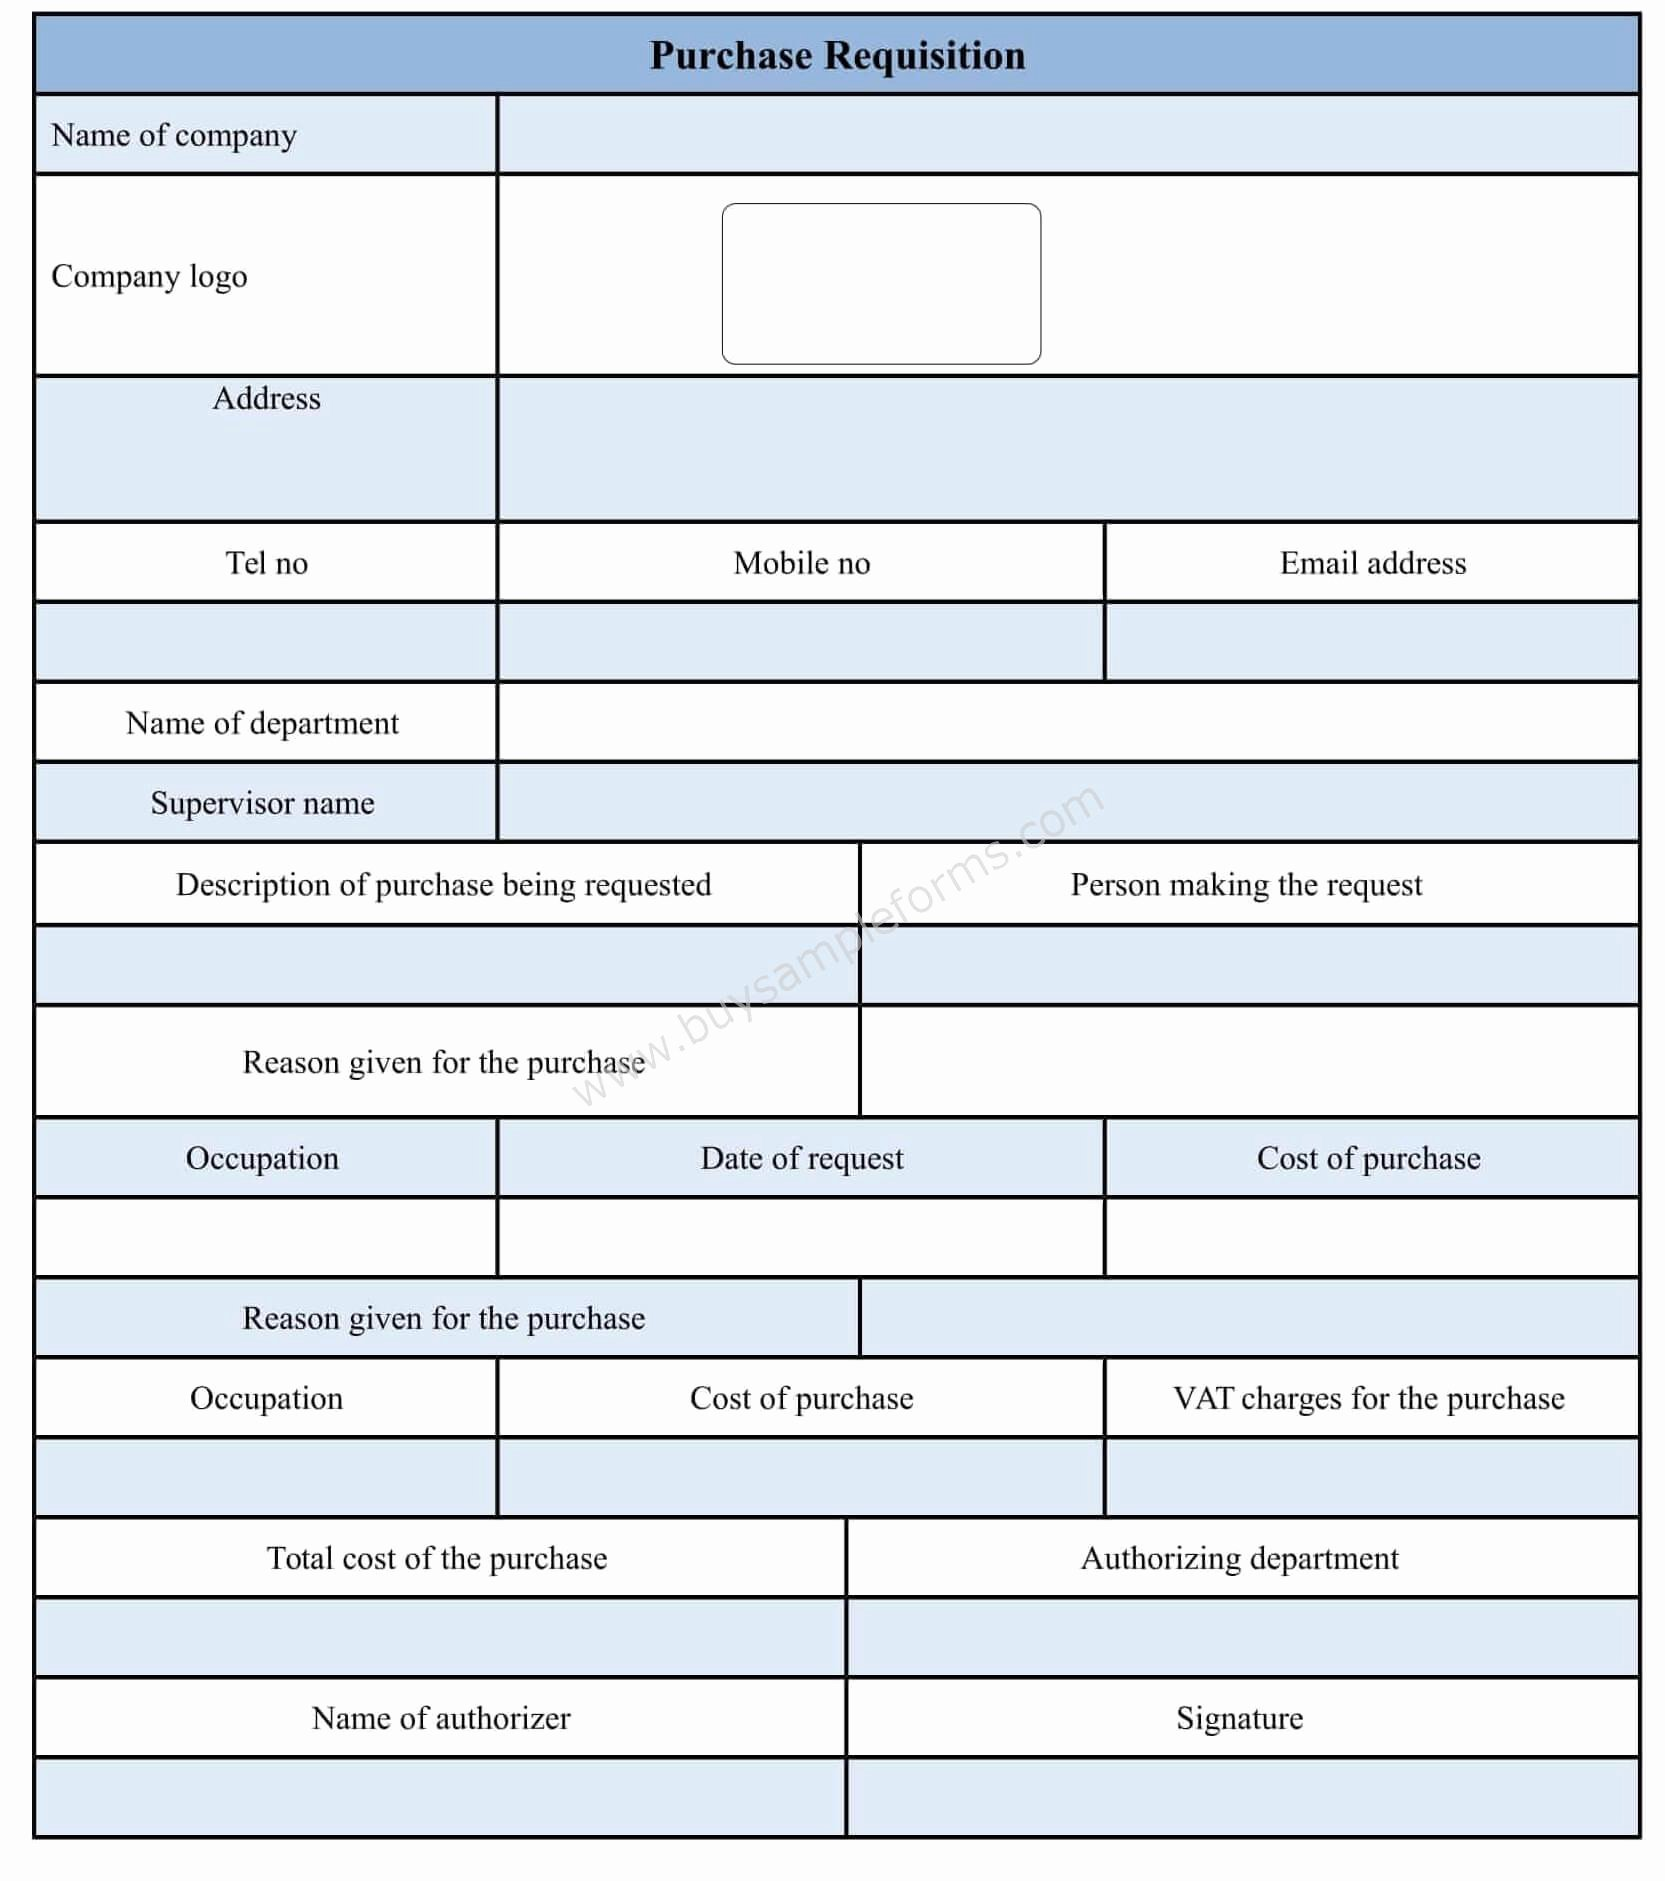 Purchase Requisition form Template Unique Purchase Requisition form Template Doc